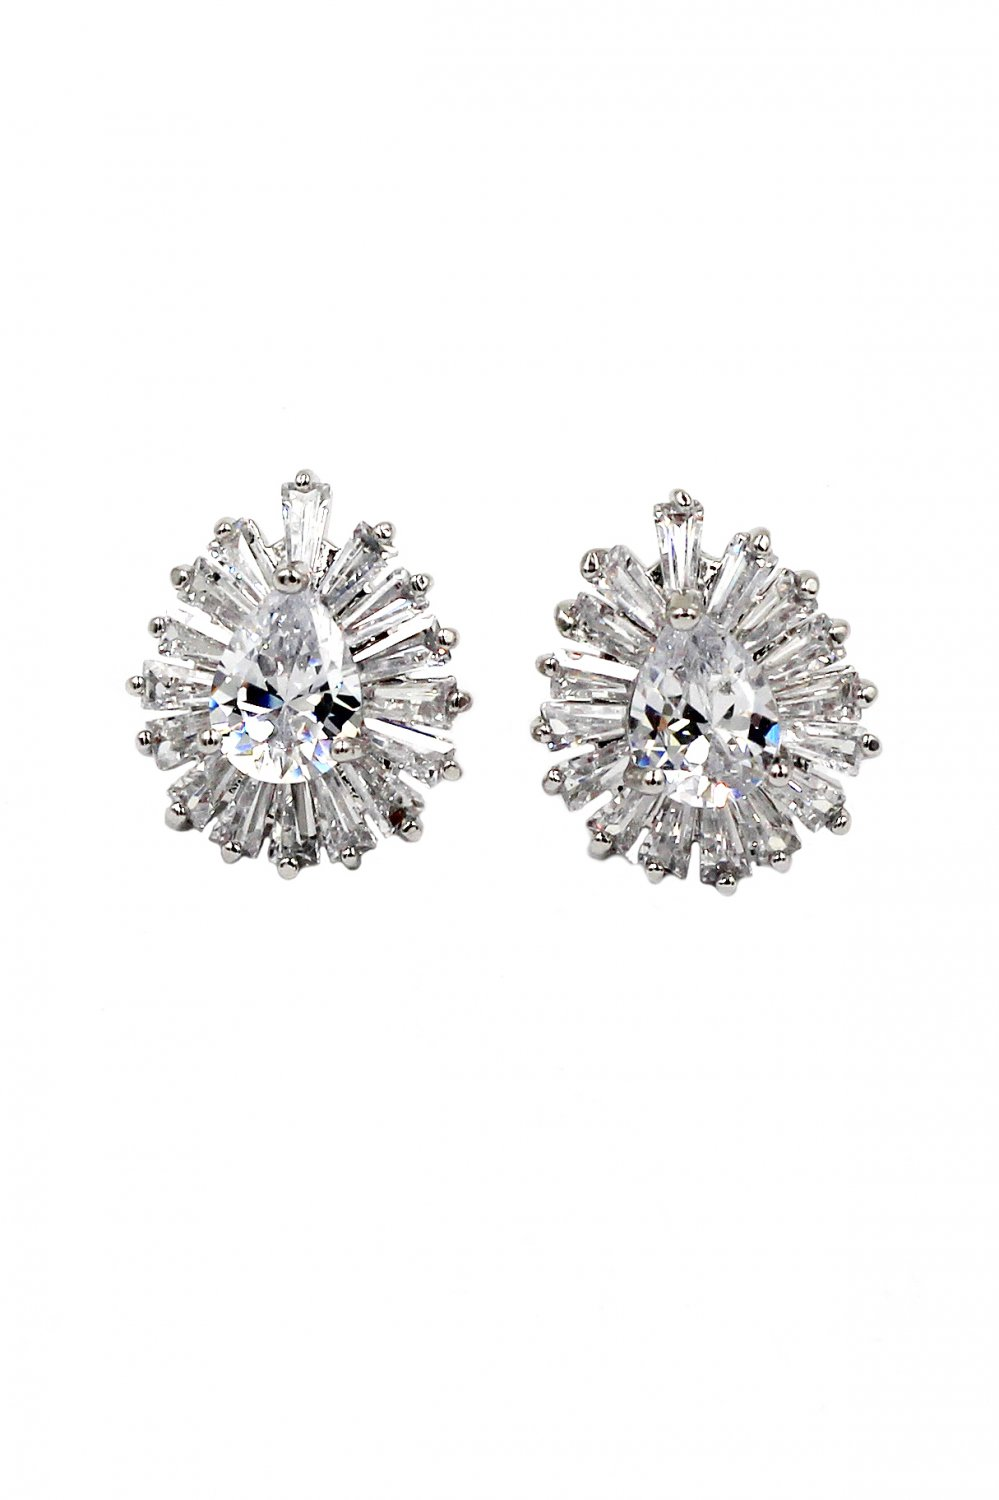 Noble crystal spider silver earrings